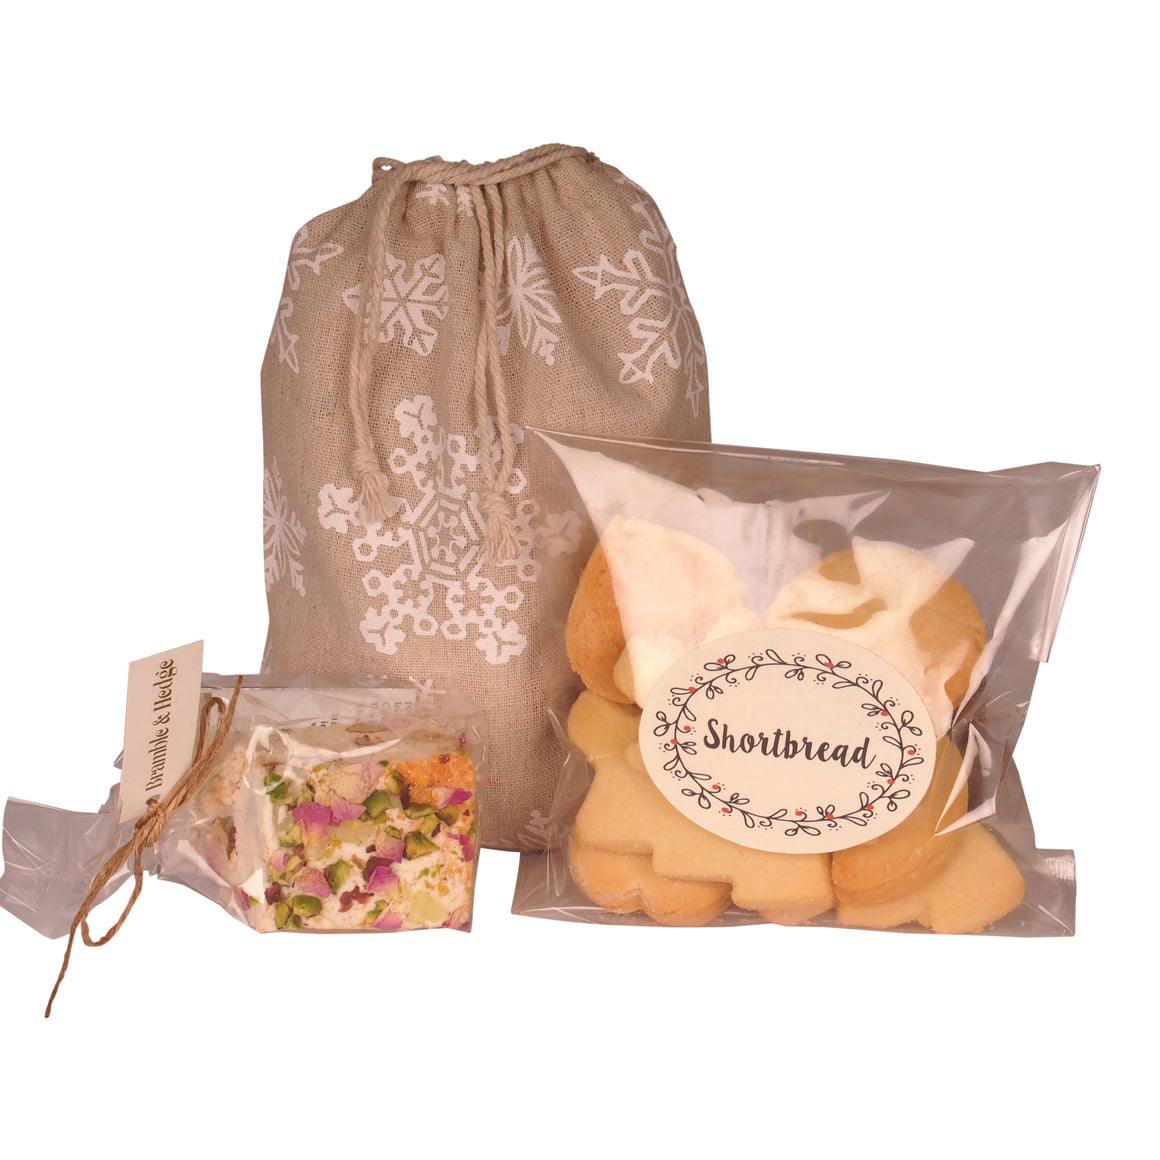 Shortbread & Nougat Bag